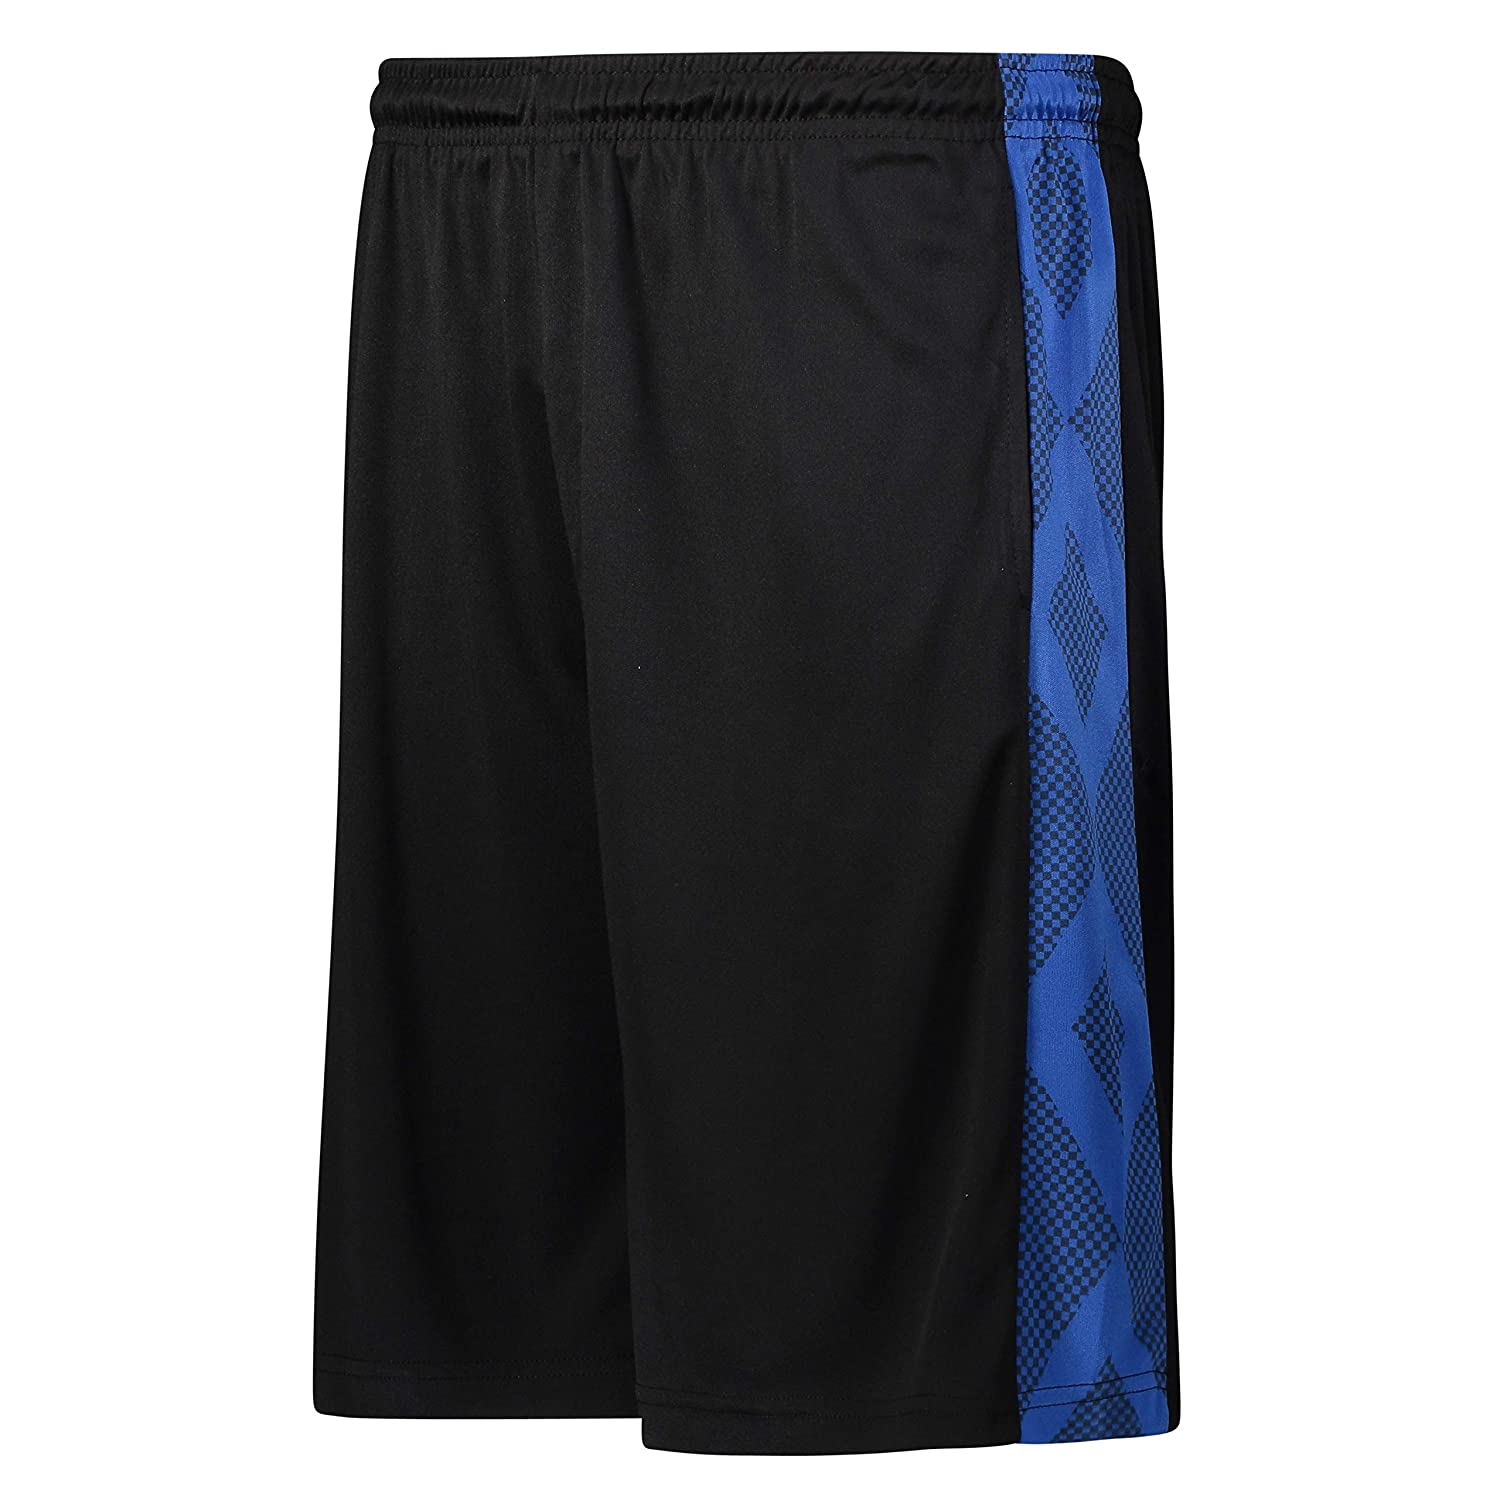 3ee879b169 X-PRO Men's Athletic Active Performance - Workout Gym Shorts with Pockets -  3 Pack at Amazon Men's Clothing store: